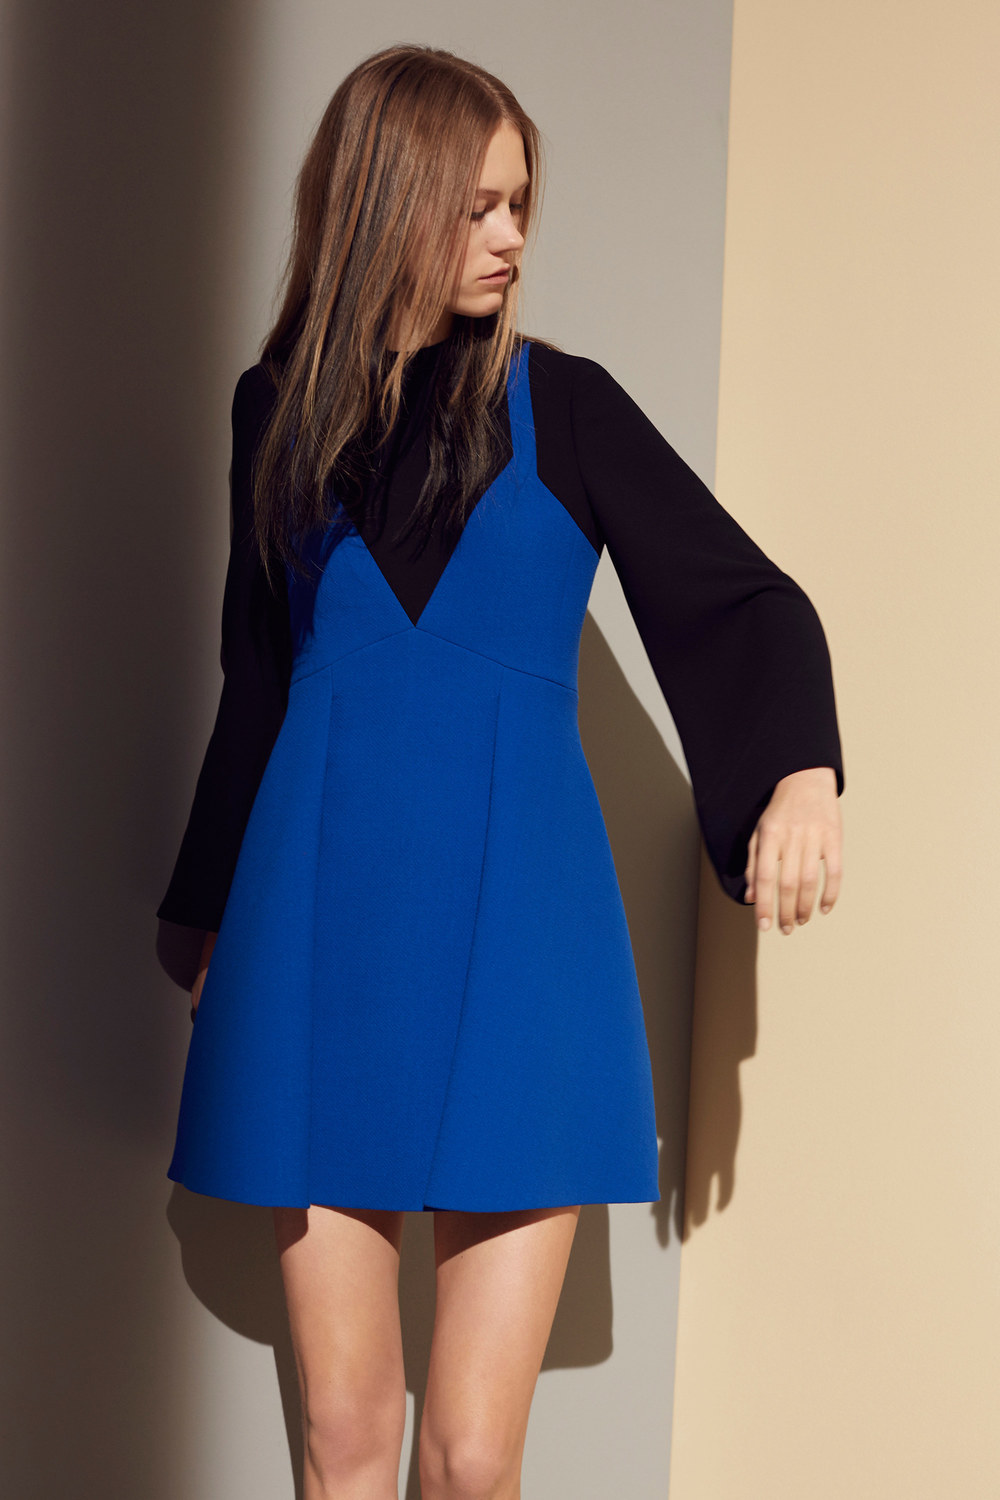 victoria-victoria-beckham-pre-fall-2016-lookbook-06.jpg